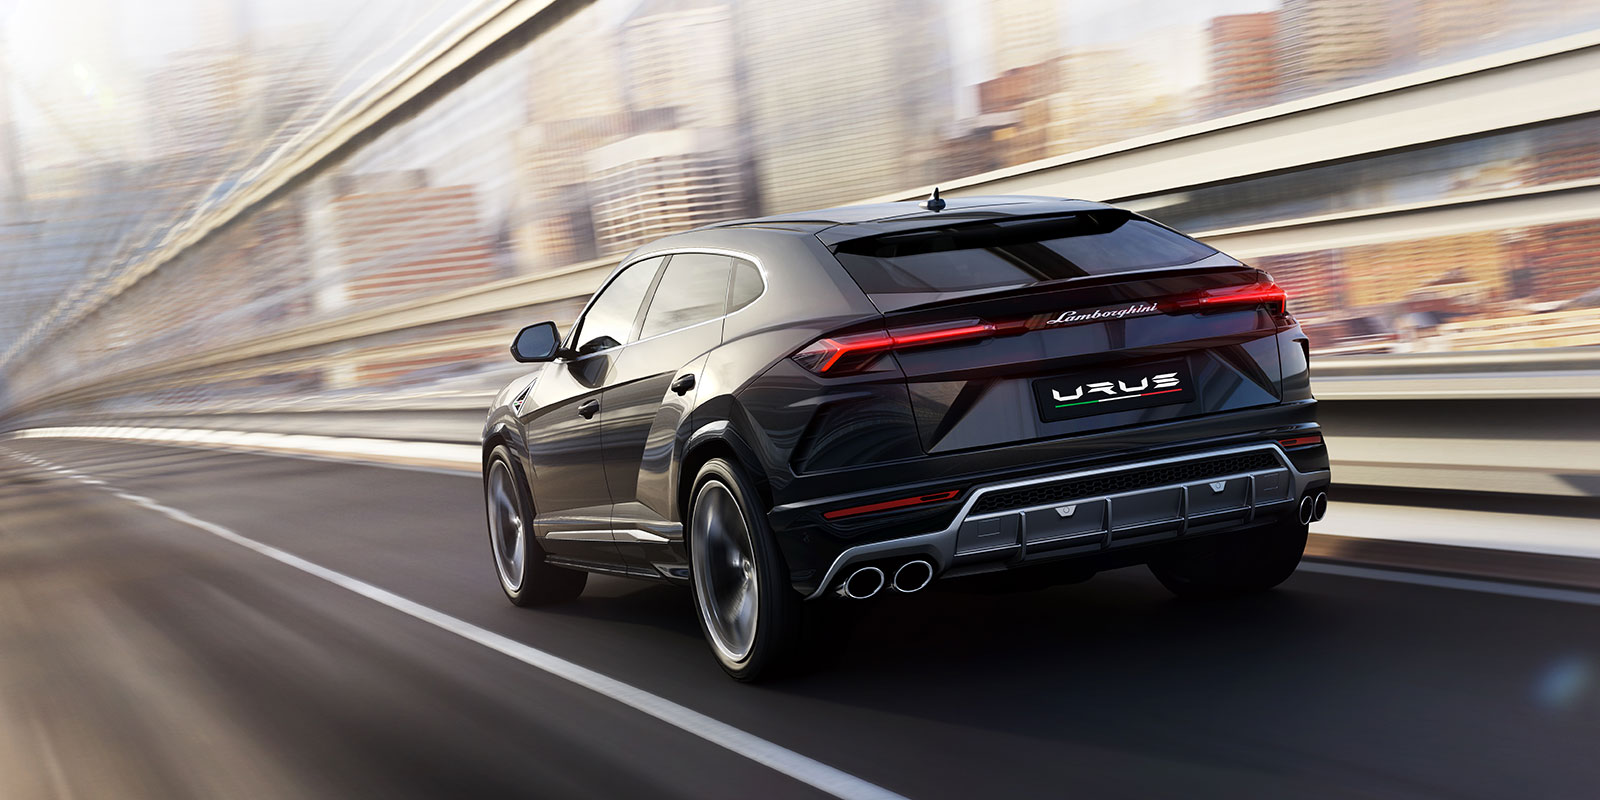 Lamborghini Urus - The World's First Super Sport Utility Vehicle image 13